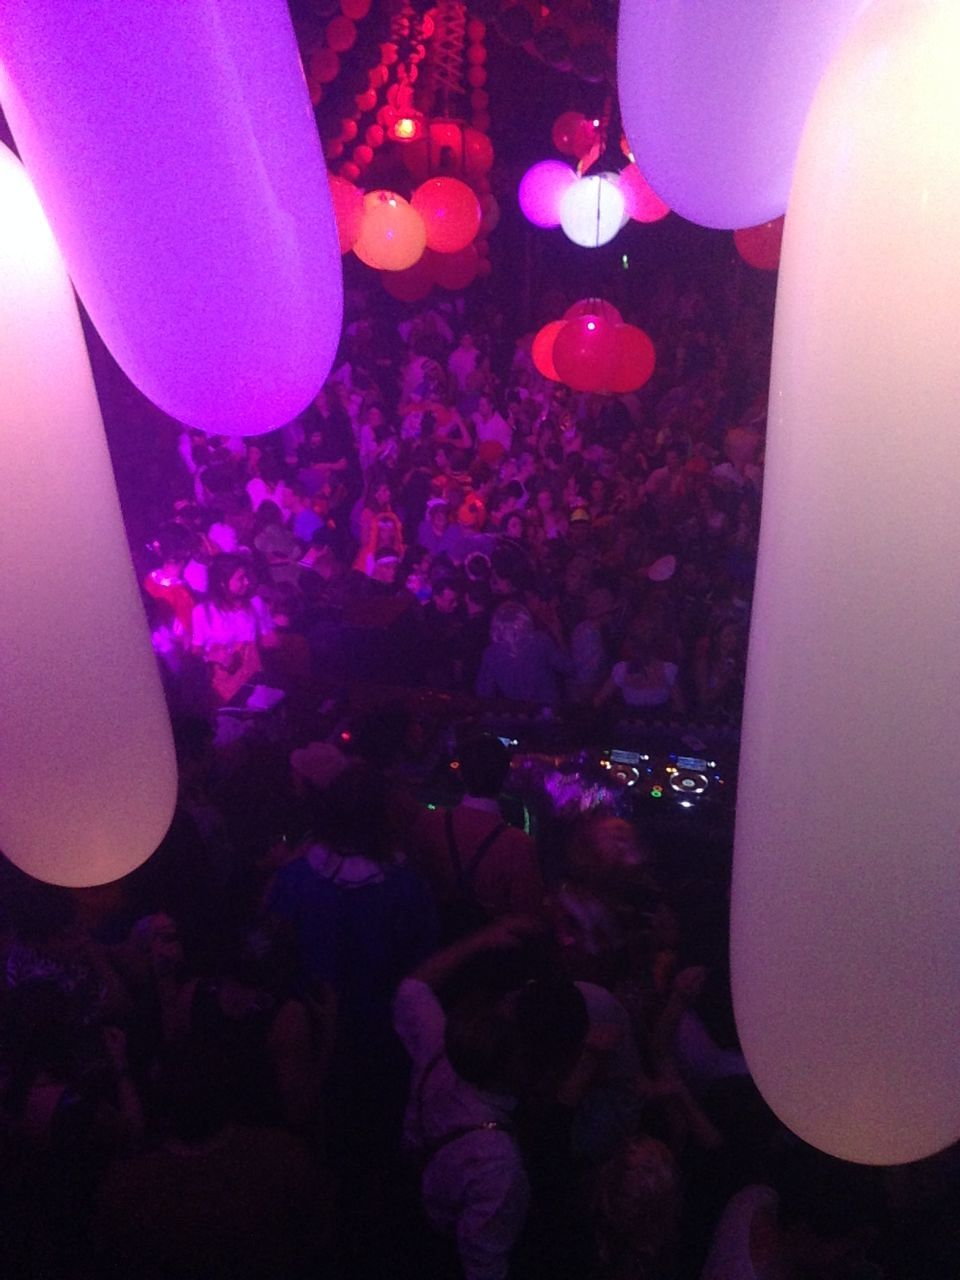 illuminated, lighting equipment, indoors, arts culture and entertainment, celebration, nightlife, nightclub, night, large group of people, balloon, crowd, party - social event, disco lights, people